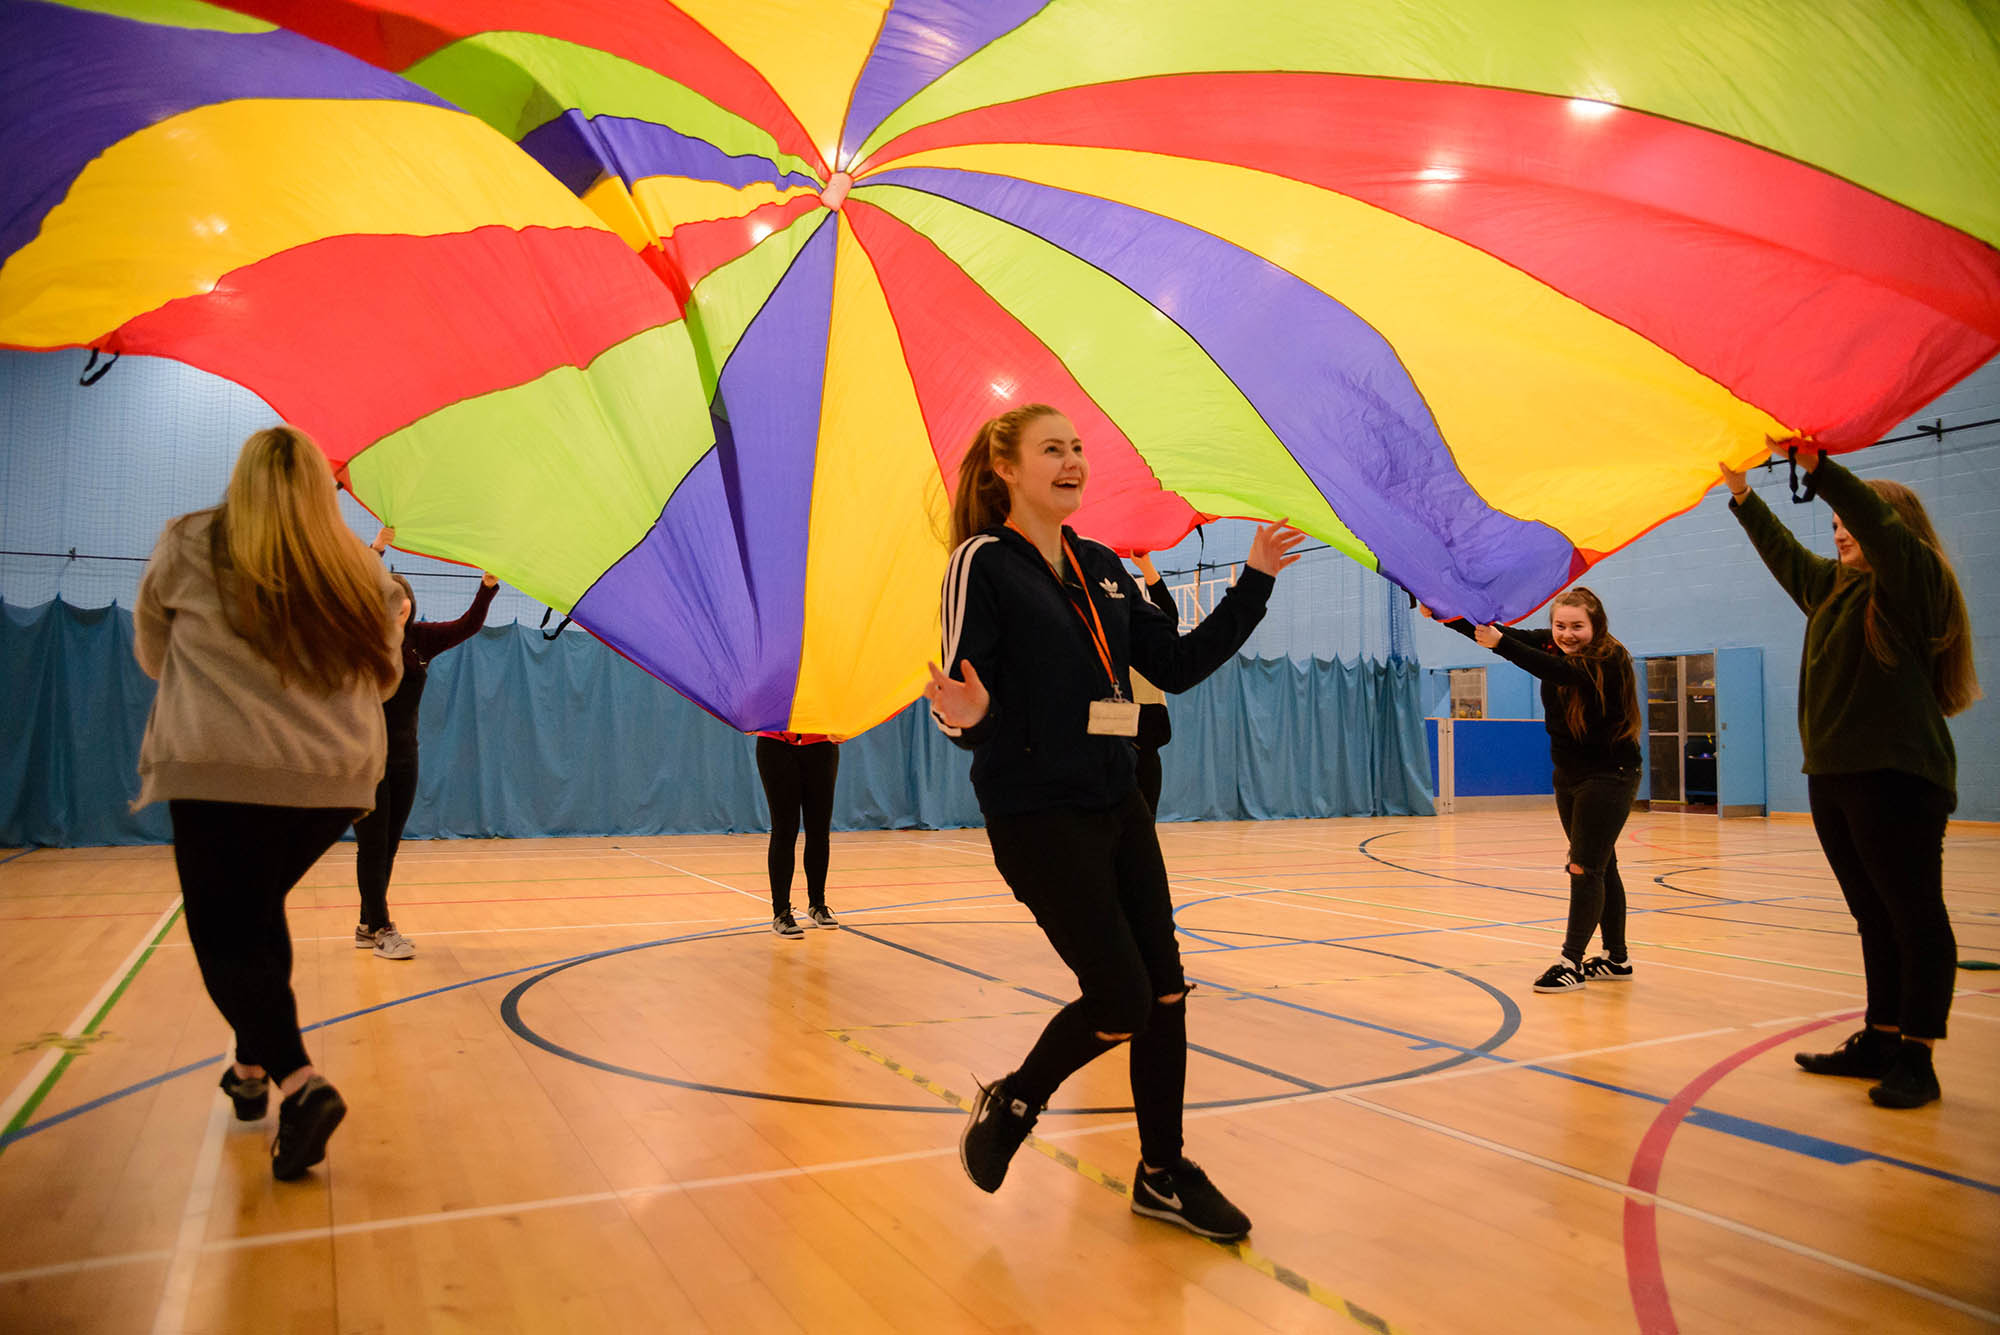 group of young women holding parachute with one person running underneath